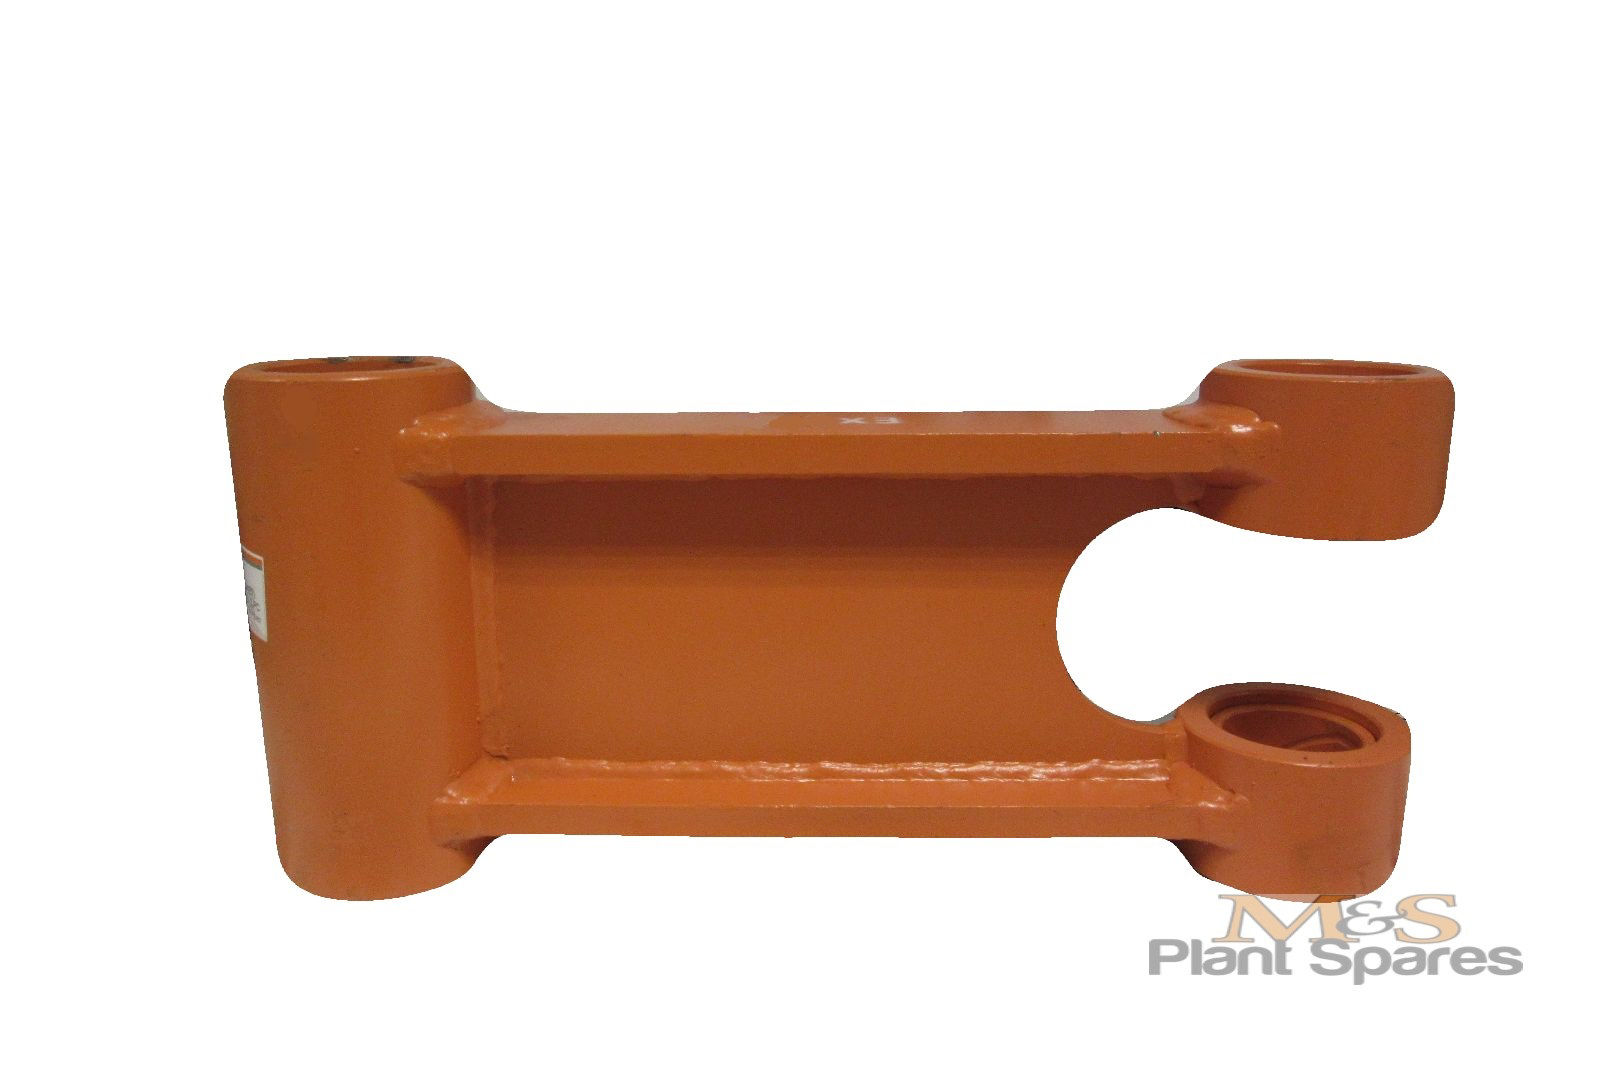 Picture for category Bucket H-Links & Side Arm sets